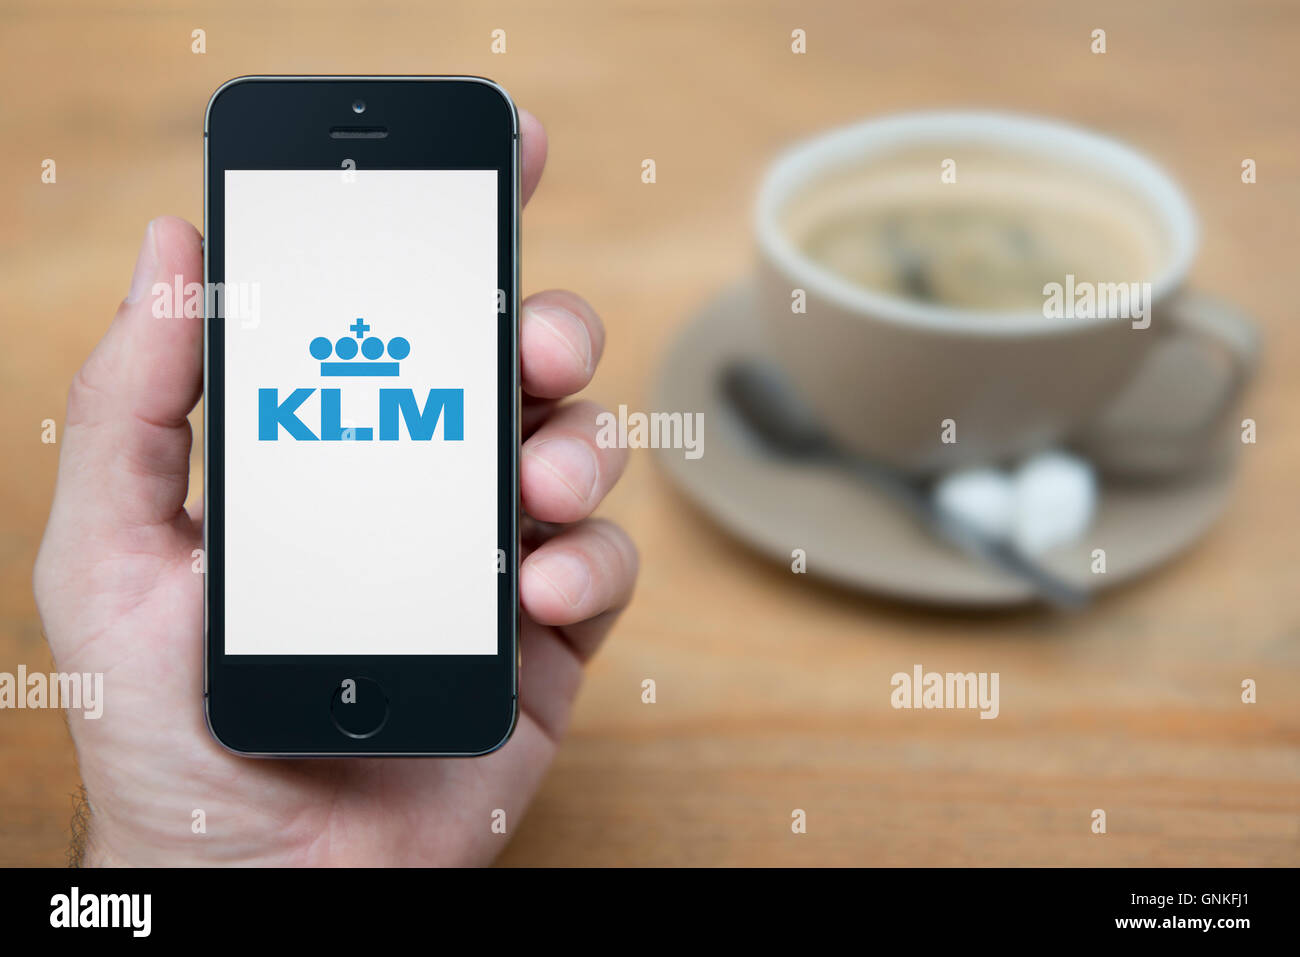 A man looks at his iPhone which displays the KLM logo, while sat with a cup of coffee (Editorial use only). - Stock Image